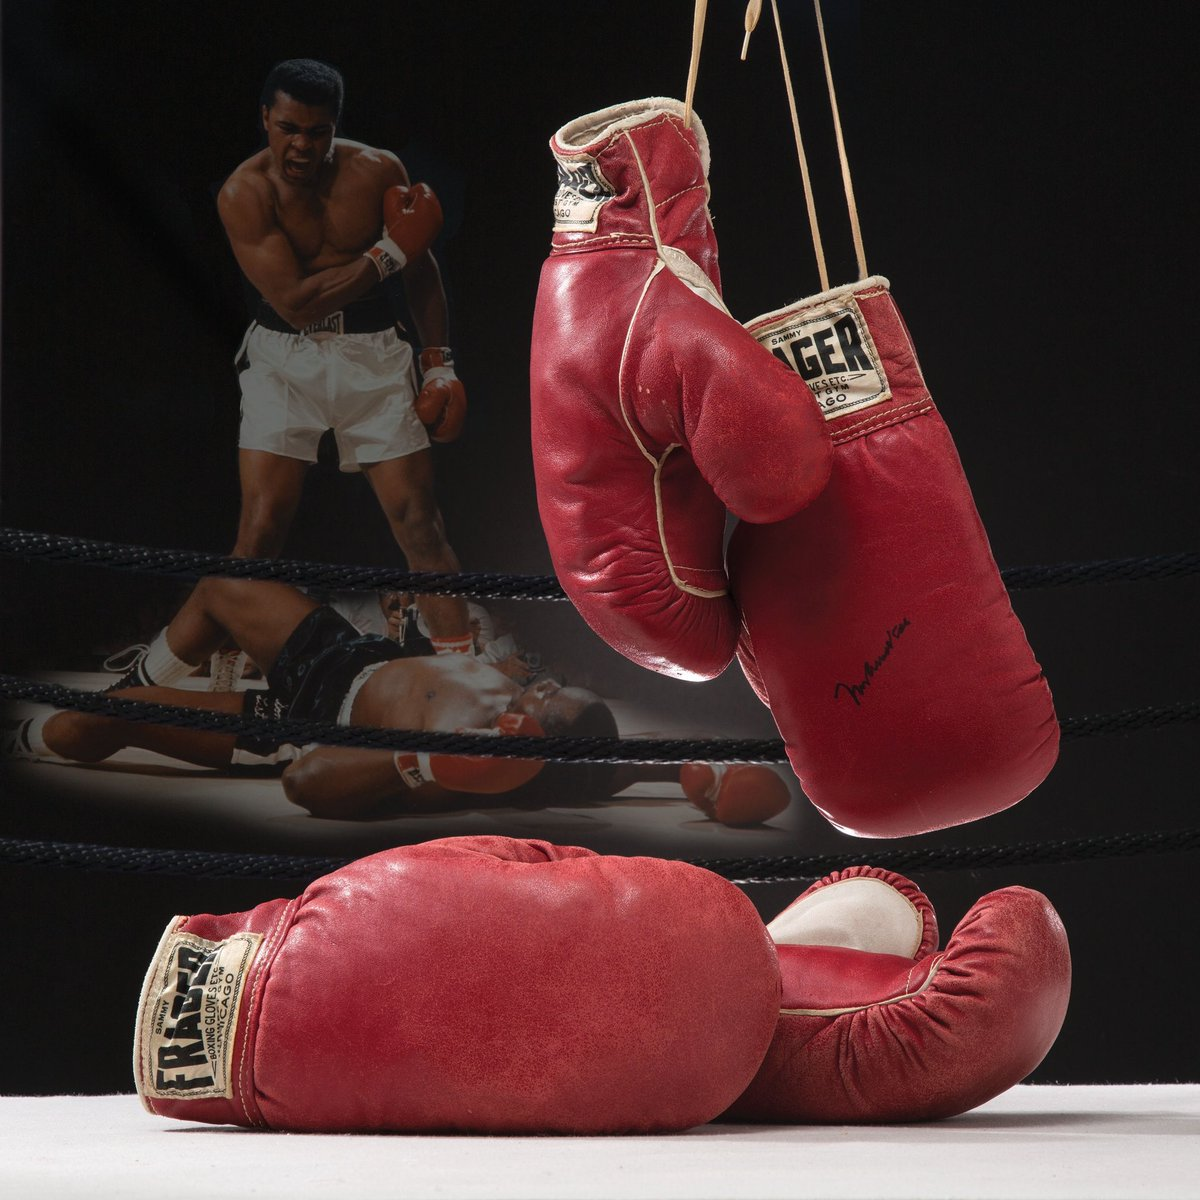 Happy Birthday Muhammad Ali.... truly the world's greatest and there will never be another ♥️♥️💎 #MuhammadAli https://t.co/3UOVXBDwps